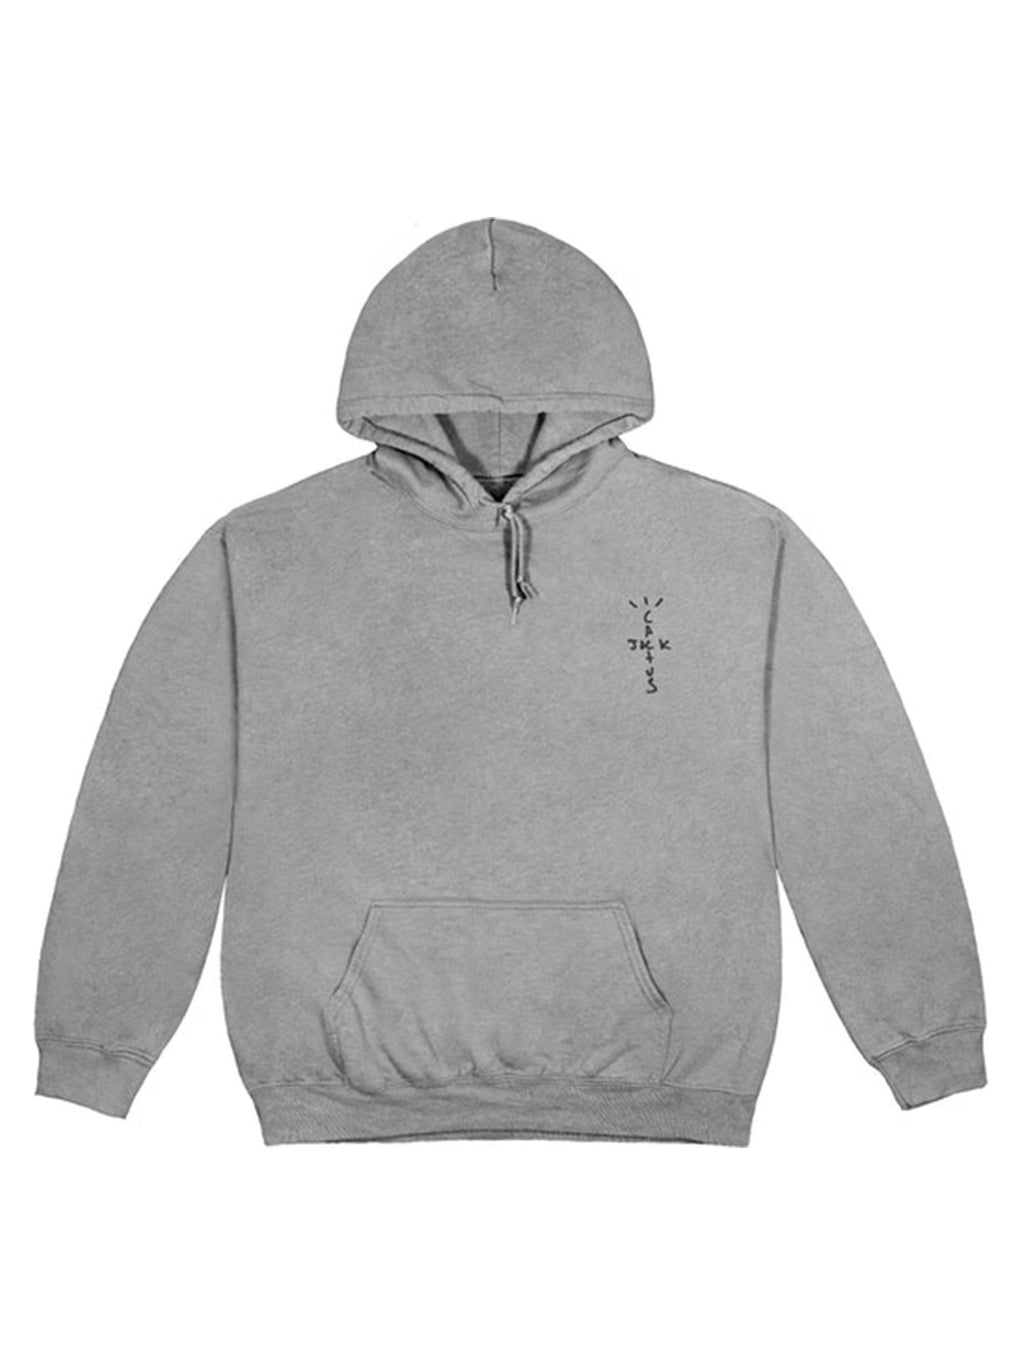 Travis Scott CJ Astro Hoodie Washed Grey - PRIOR